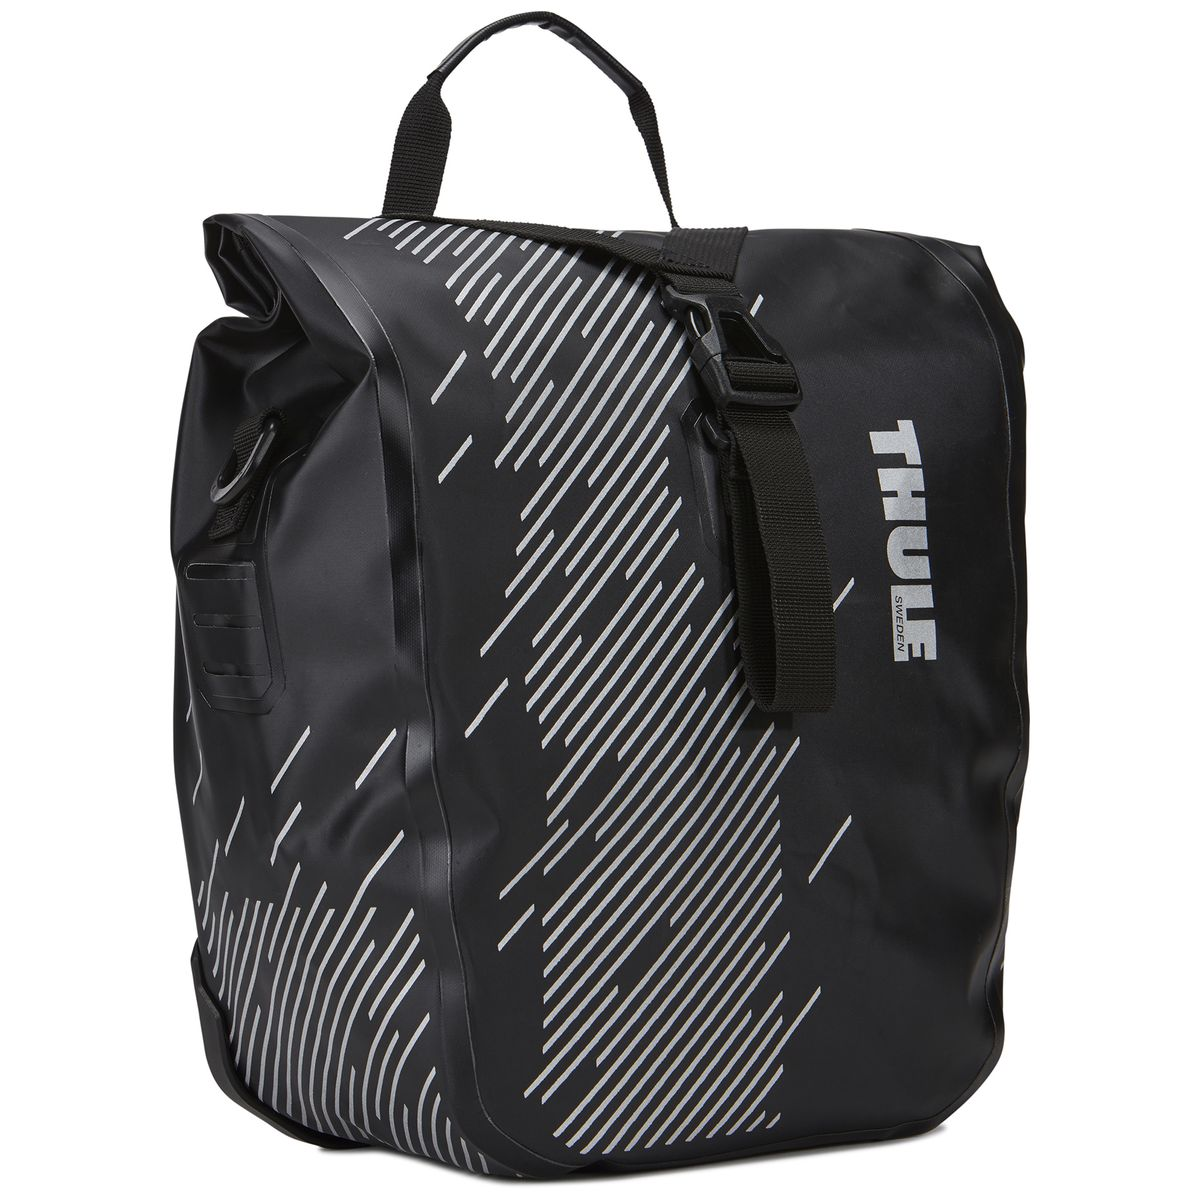 Thule Pack 'n Pedal SHIELD PANNIER SMALL set, 14 l small | Rack bags